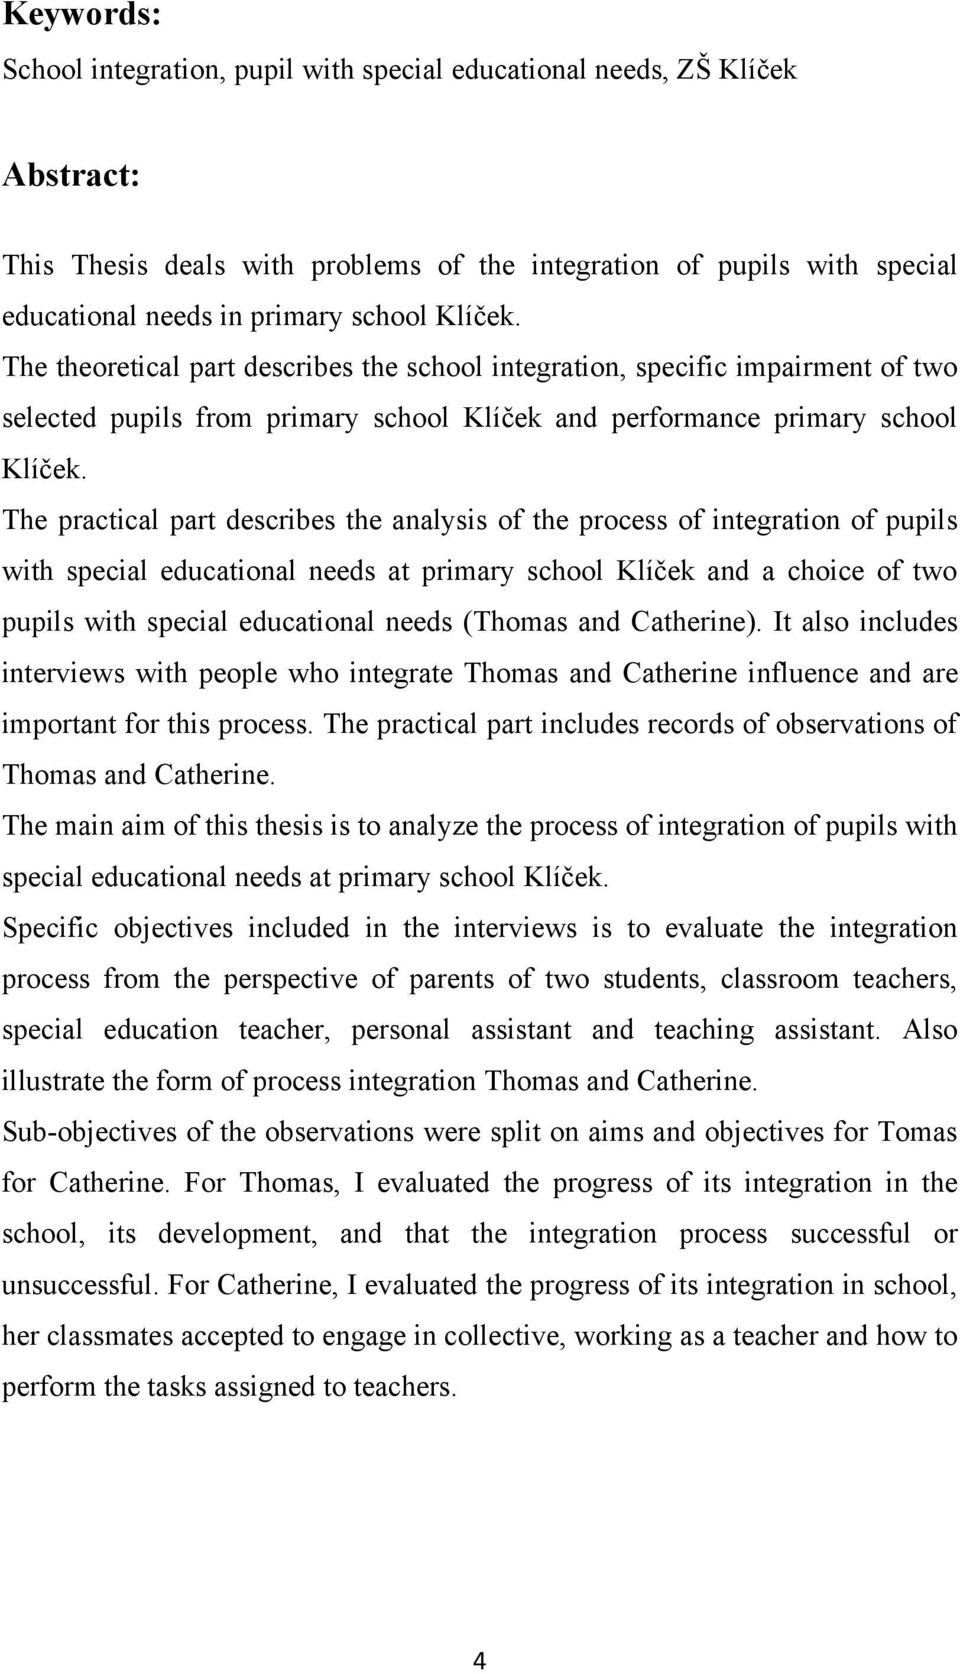 The practical part describes the analysis of the process of integration of pupils with special educational needs at primary school Klíček and a choice of two pupils with special educational needs